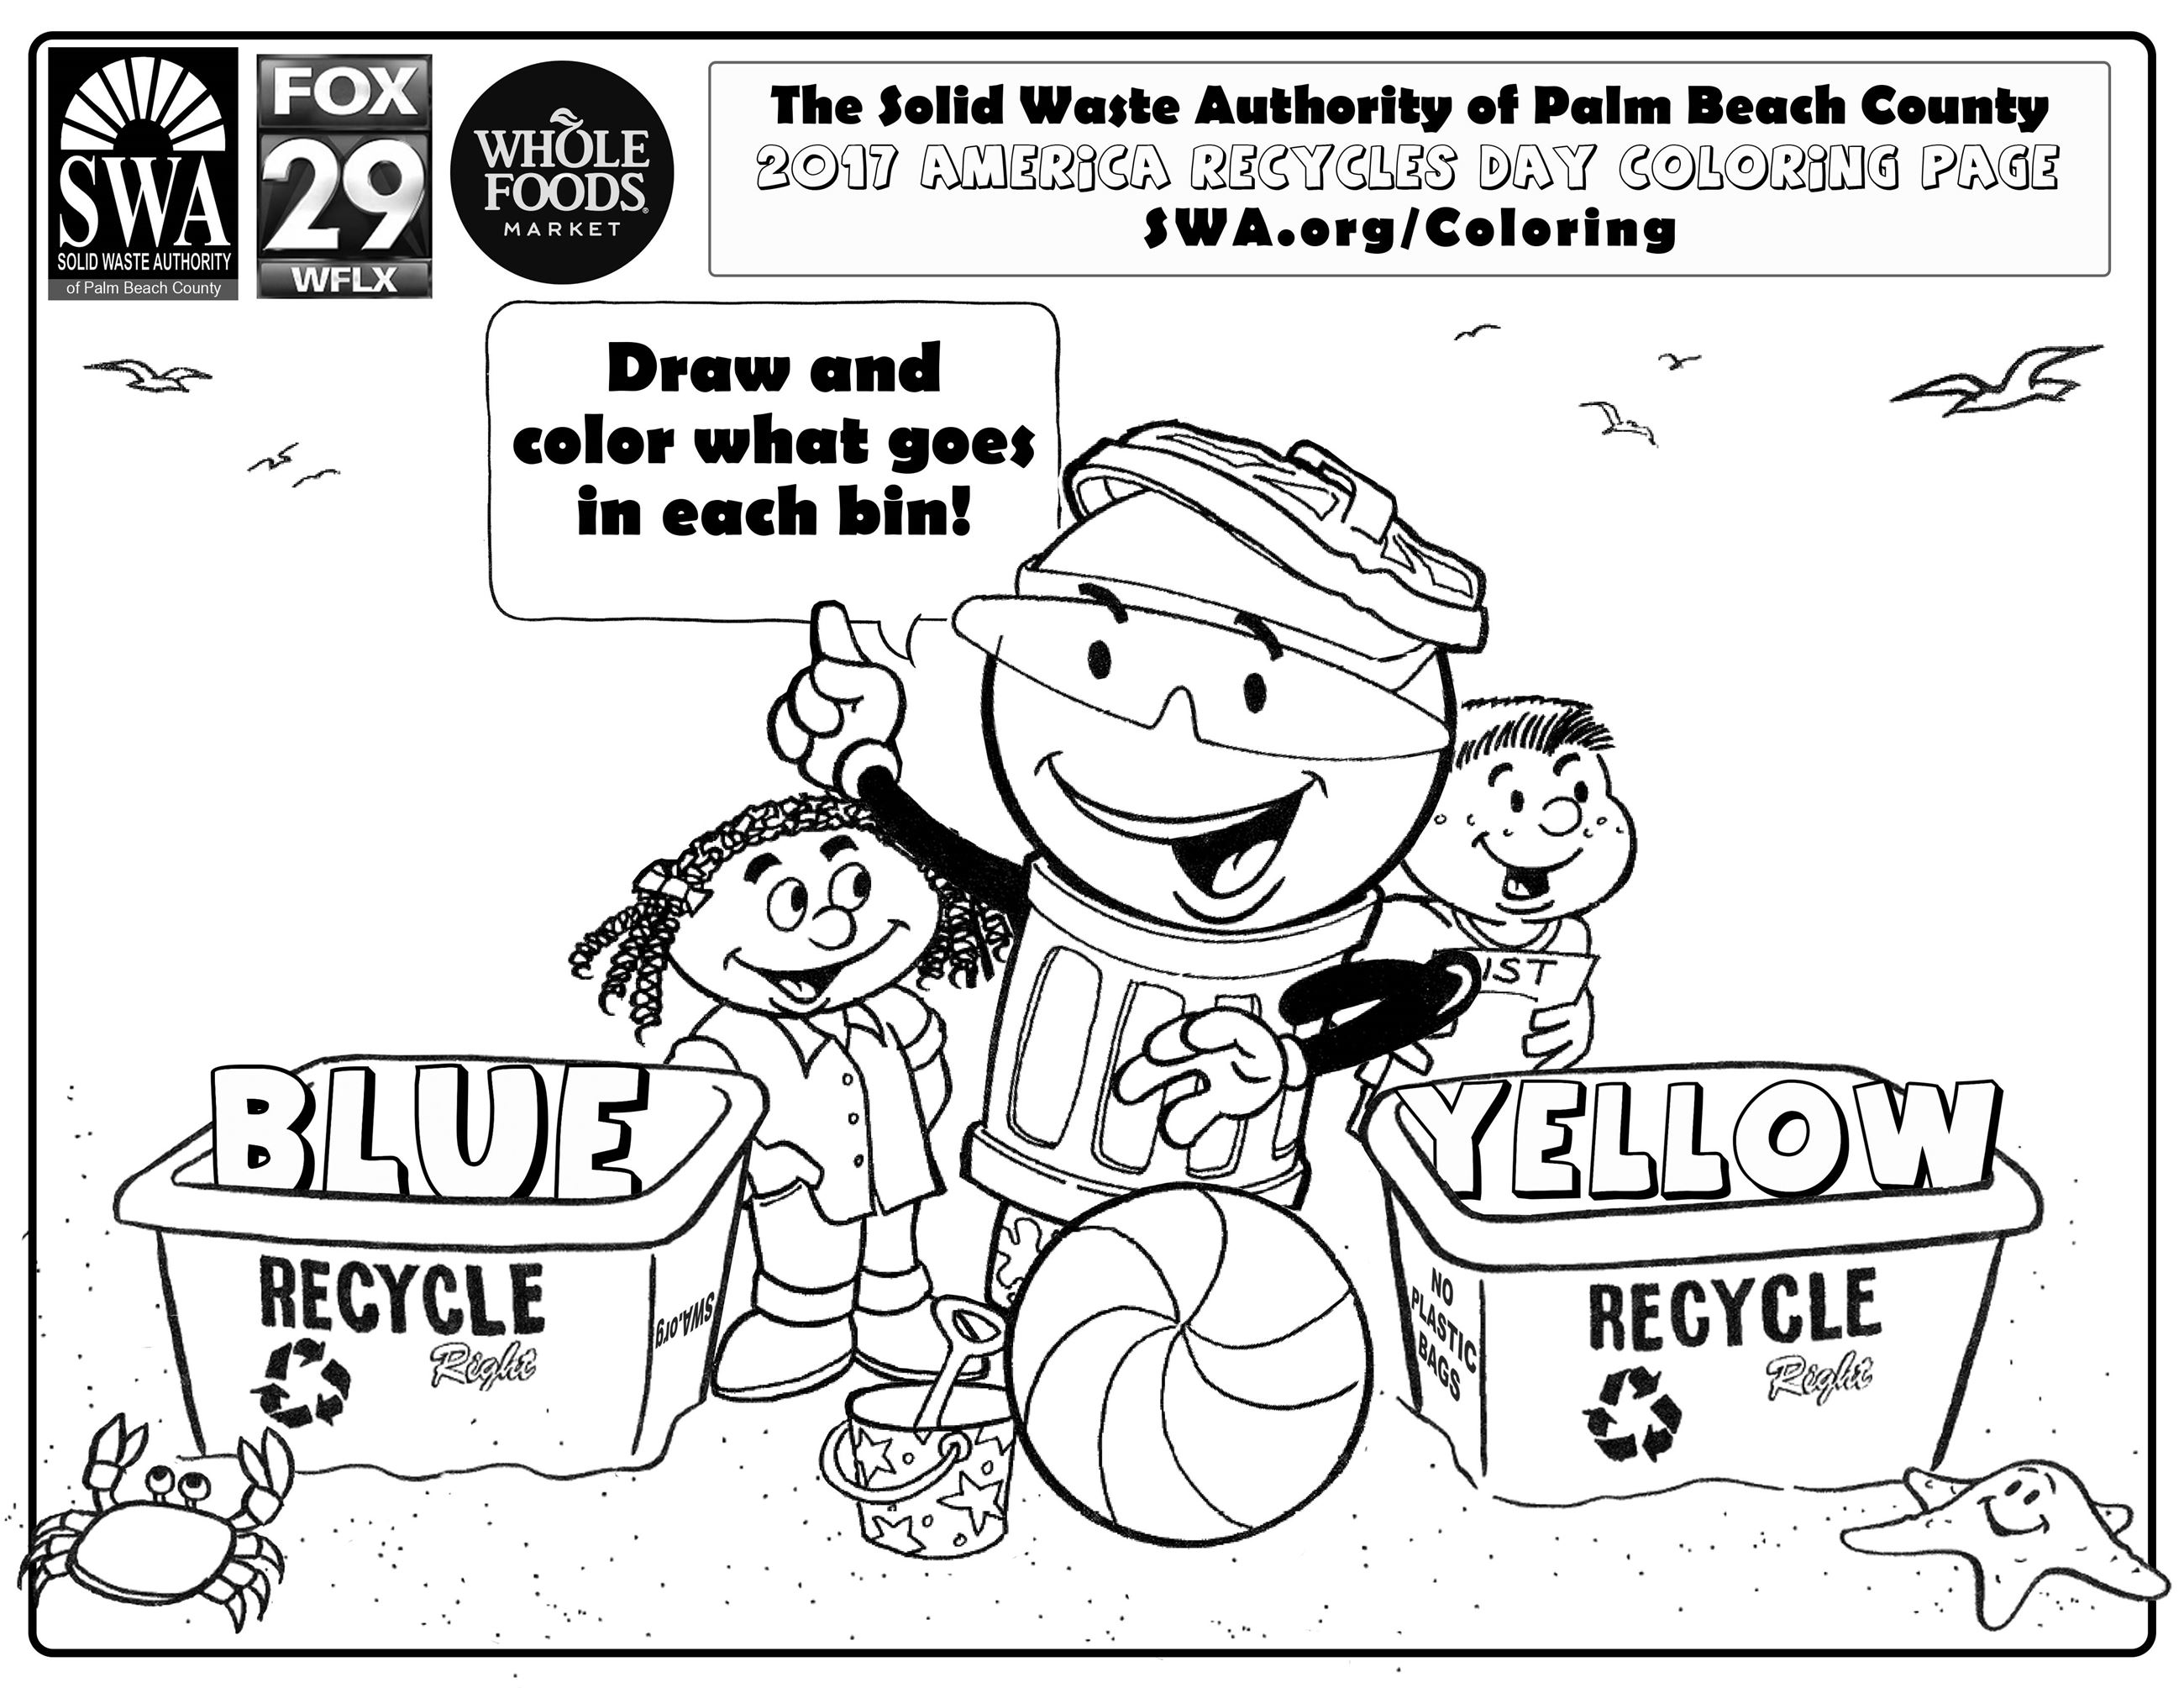 2017 SWA America Recycles Day Coloring Contest | Solid Waste ...